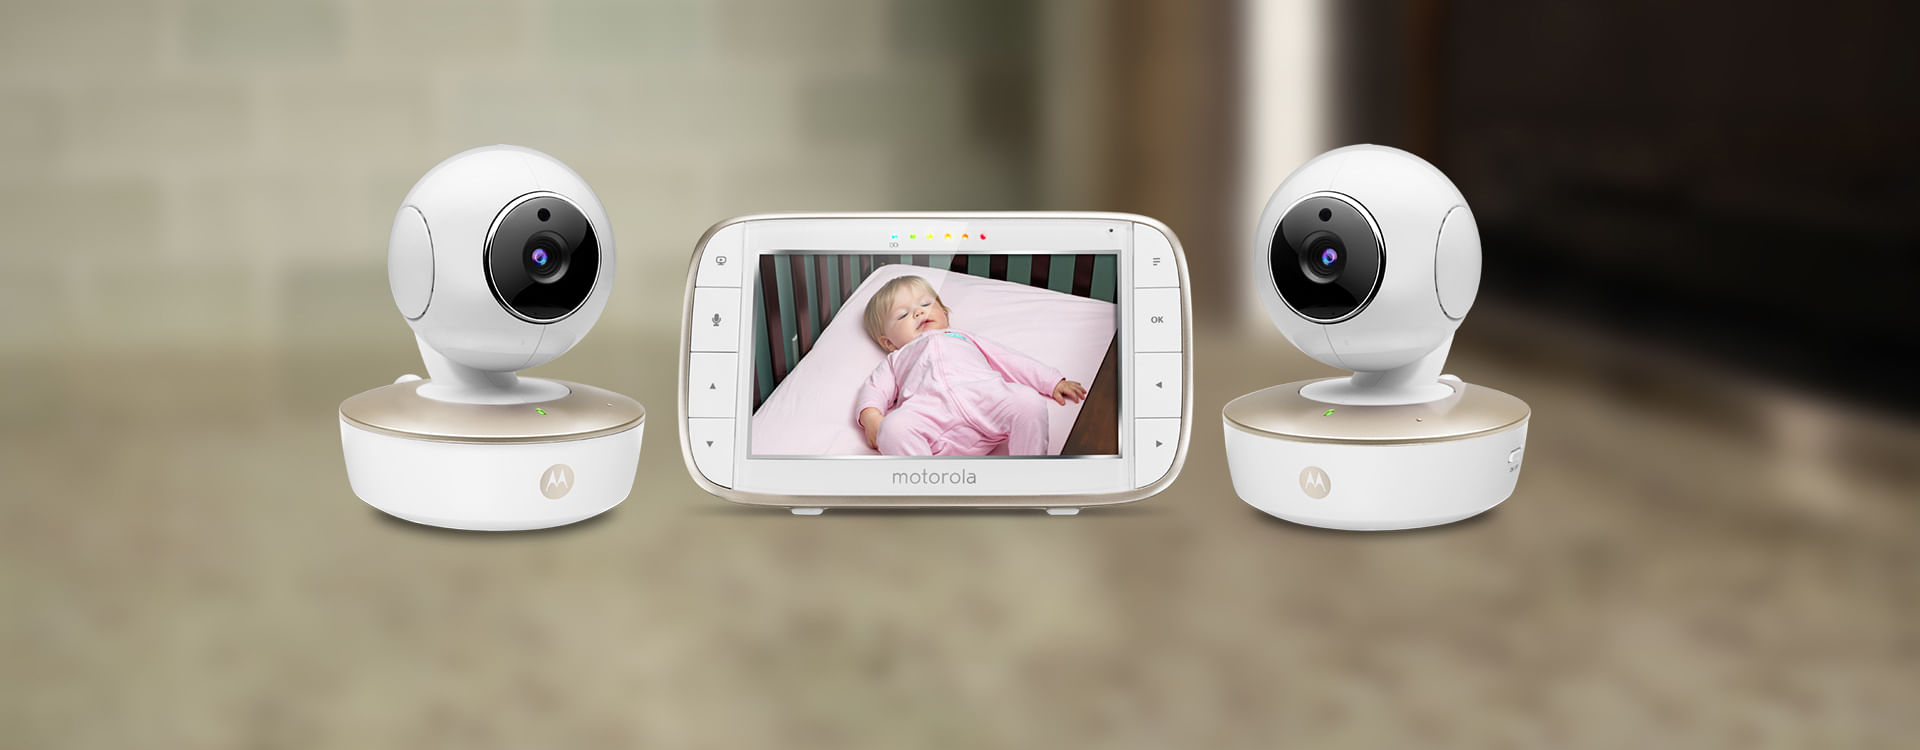 "Motorola MBP50-G2 5/"" Video Baby Monitor with Two Cameras"